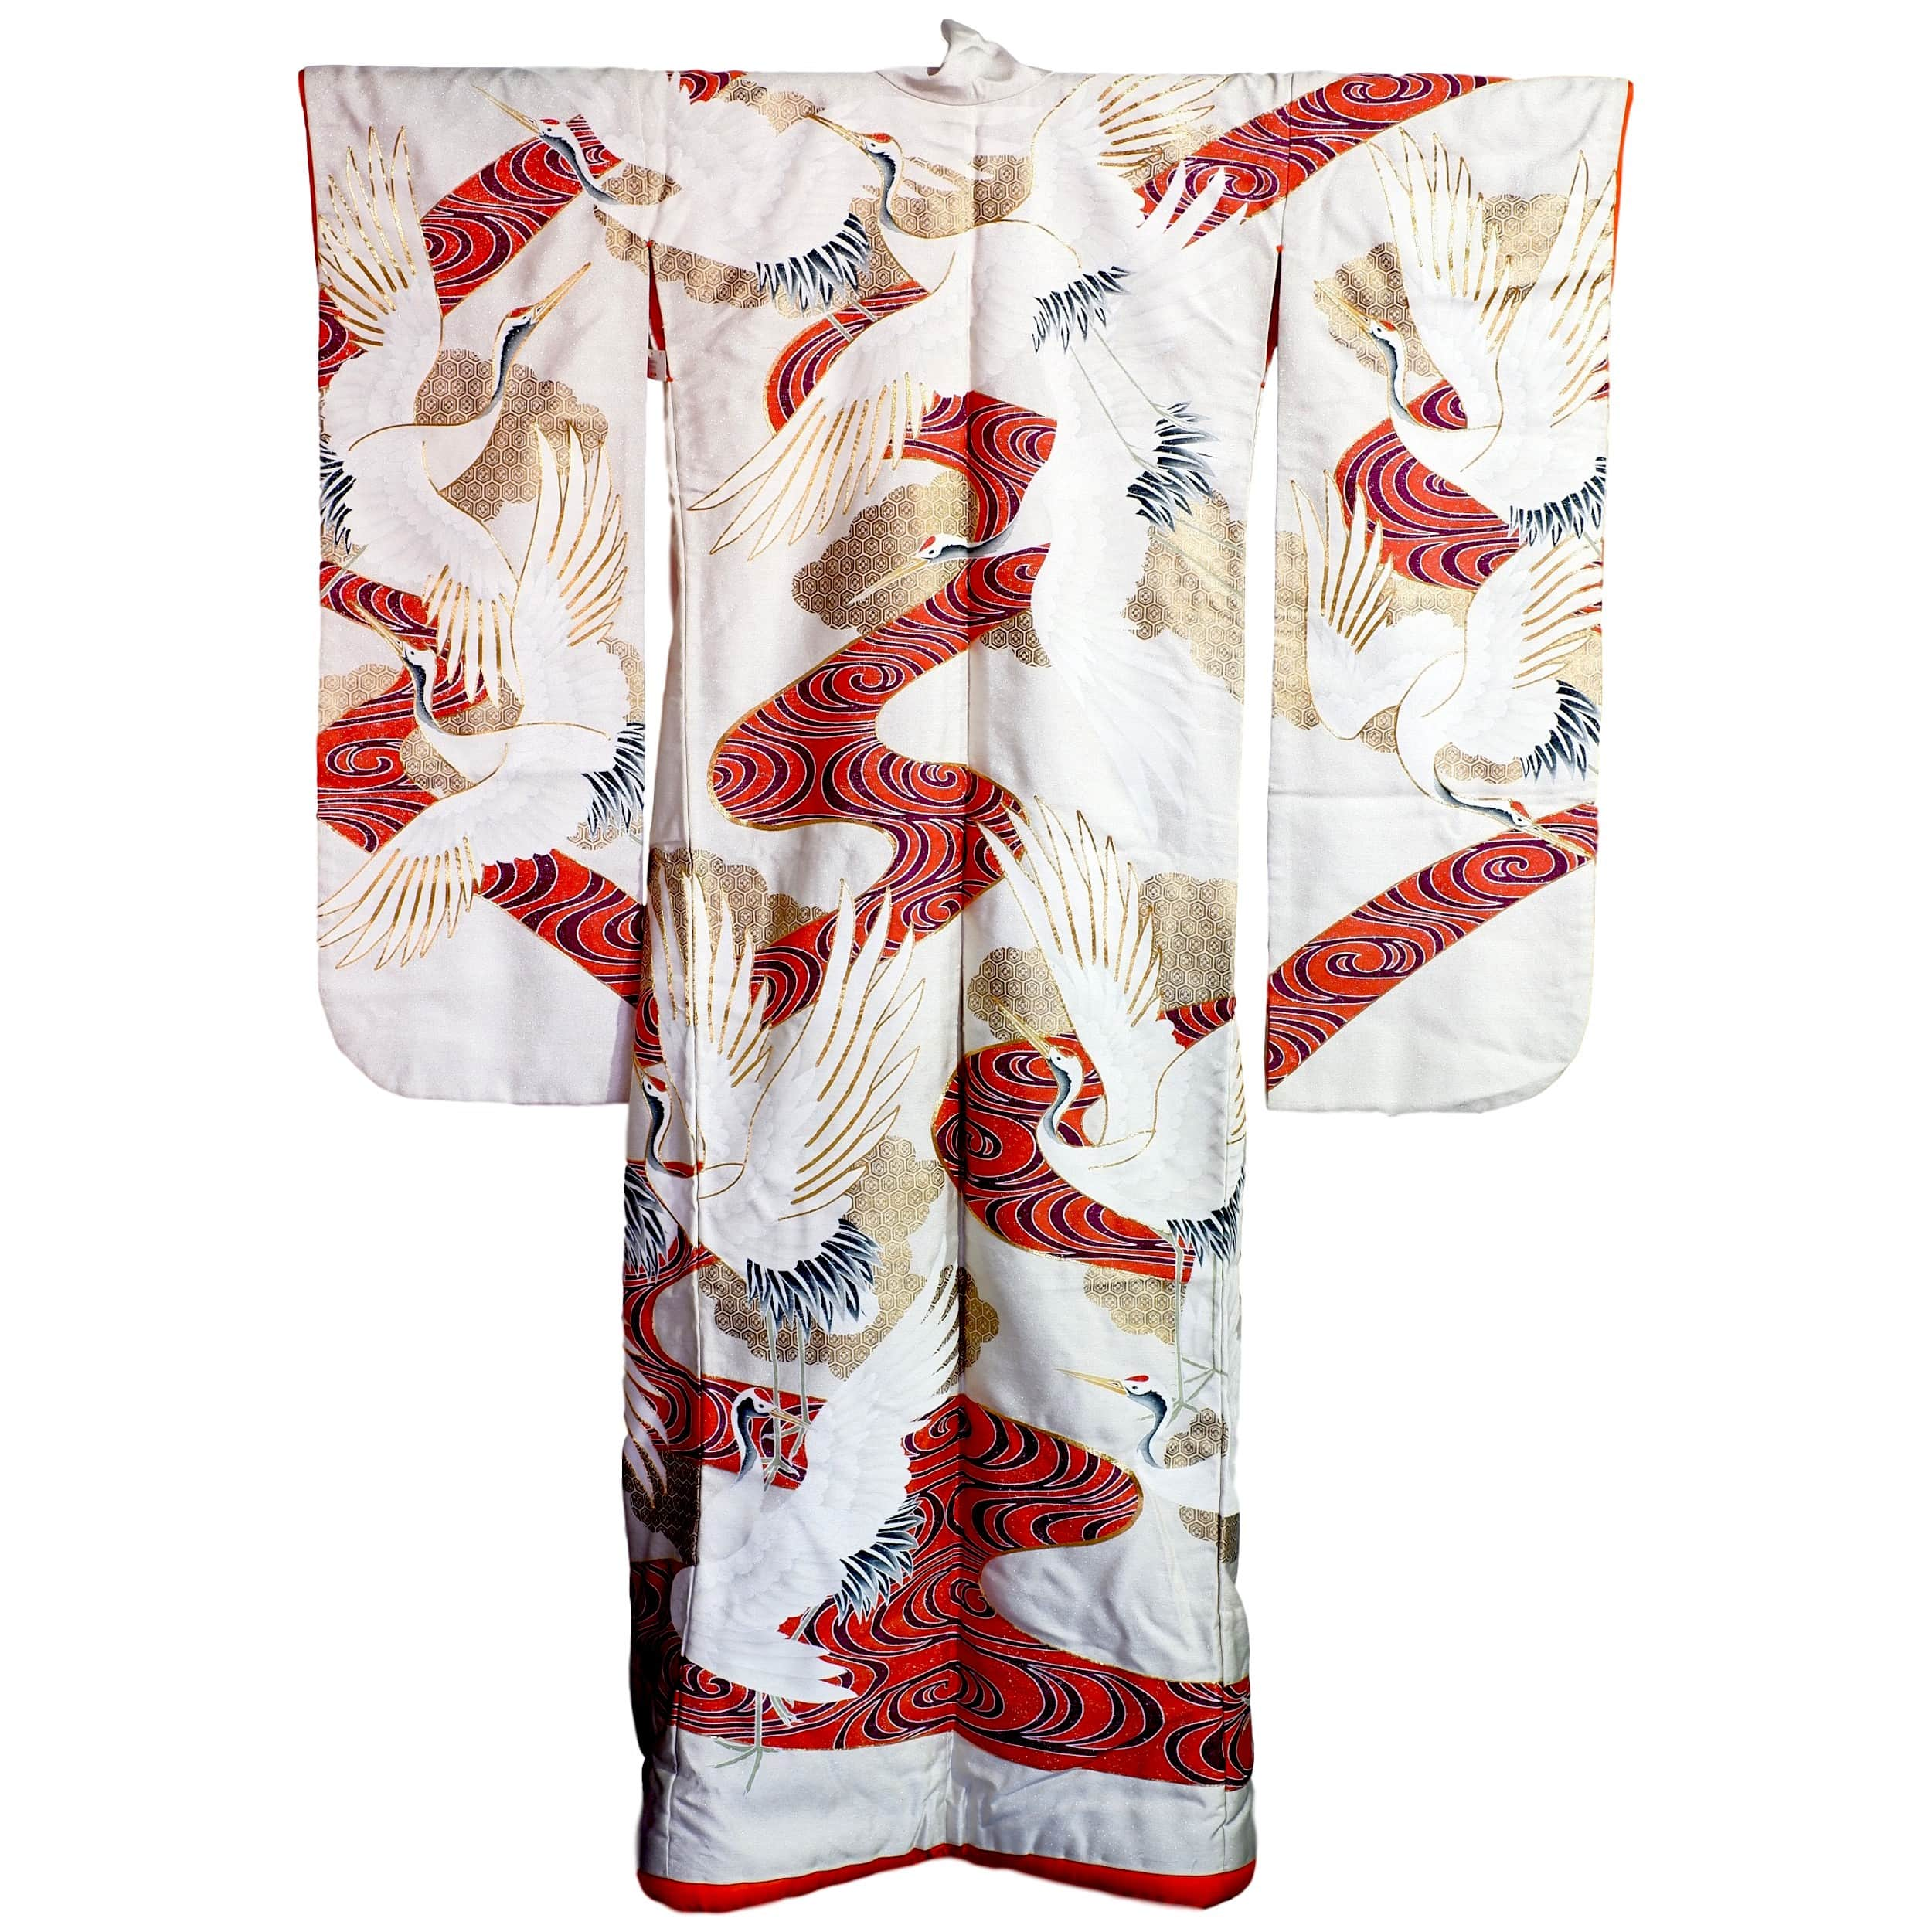 'Vintage Japanese Wedding Kimono Cream Ground with Printed and Metal Thread Embroidery'